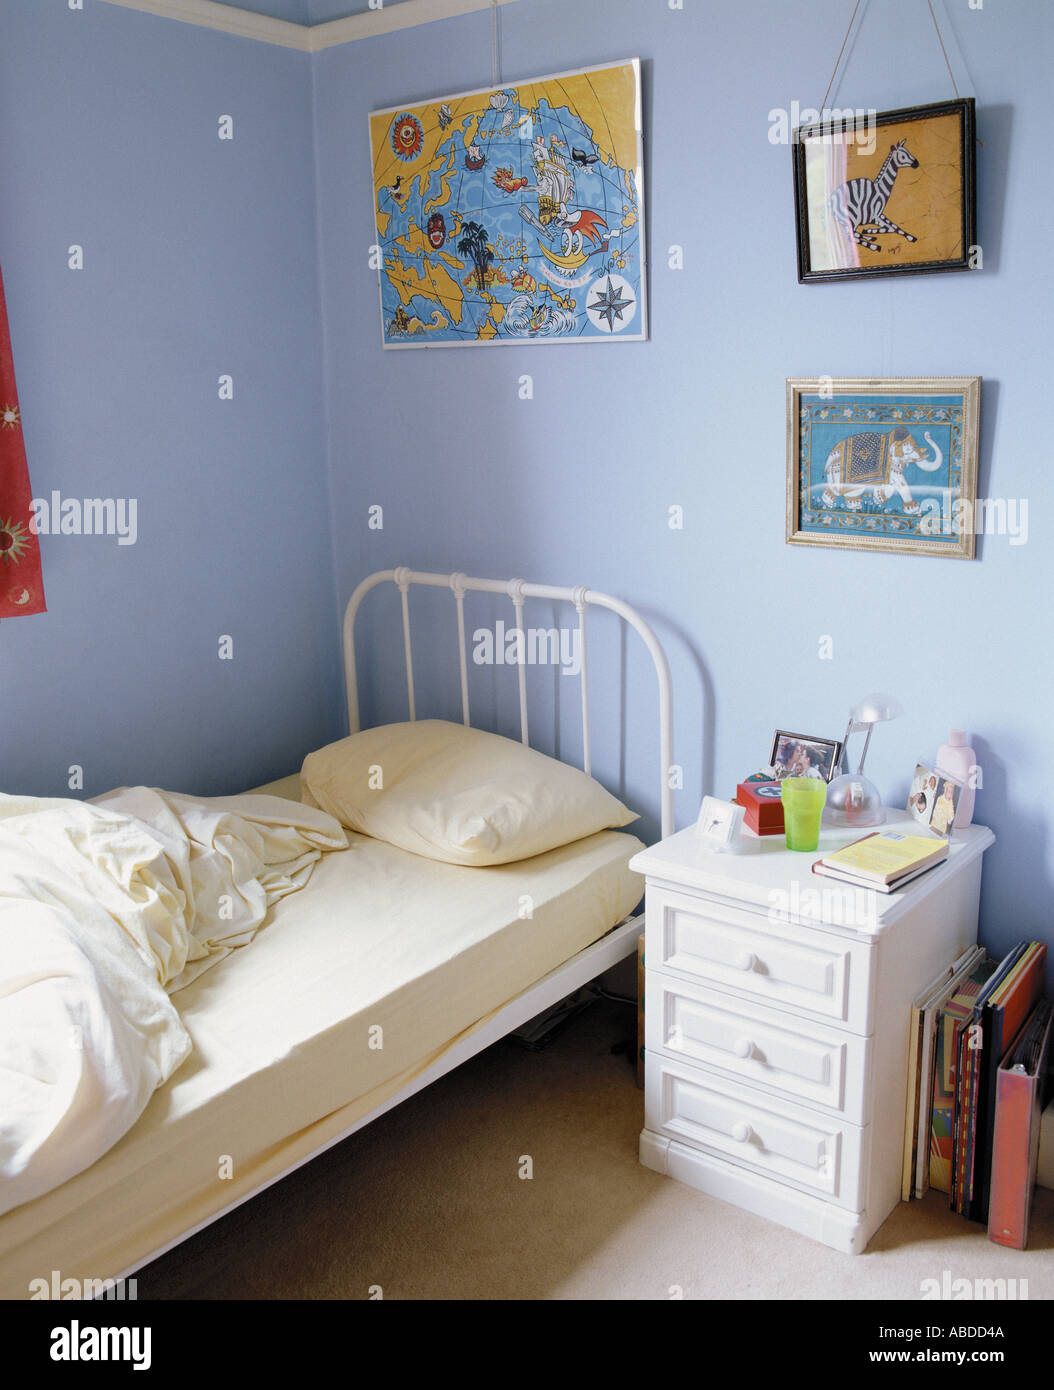 Messy Boys Bedroom Stock Photos Images